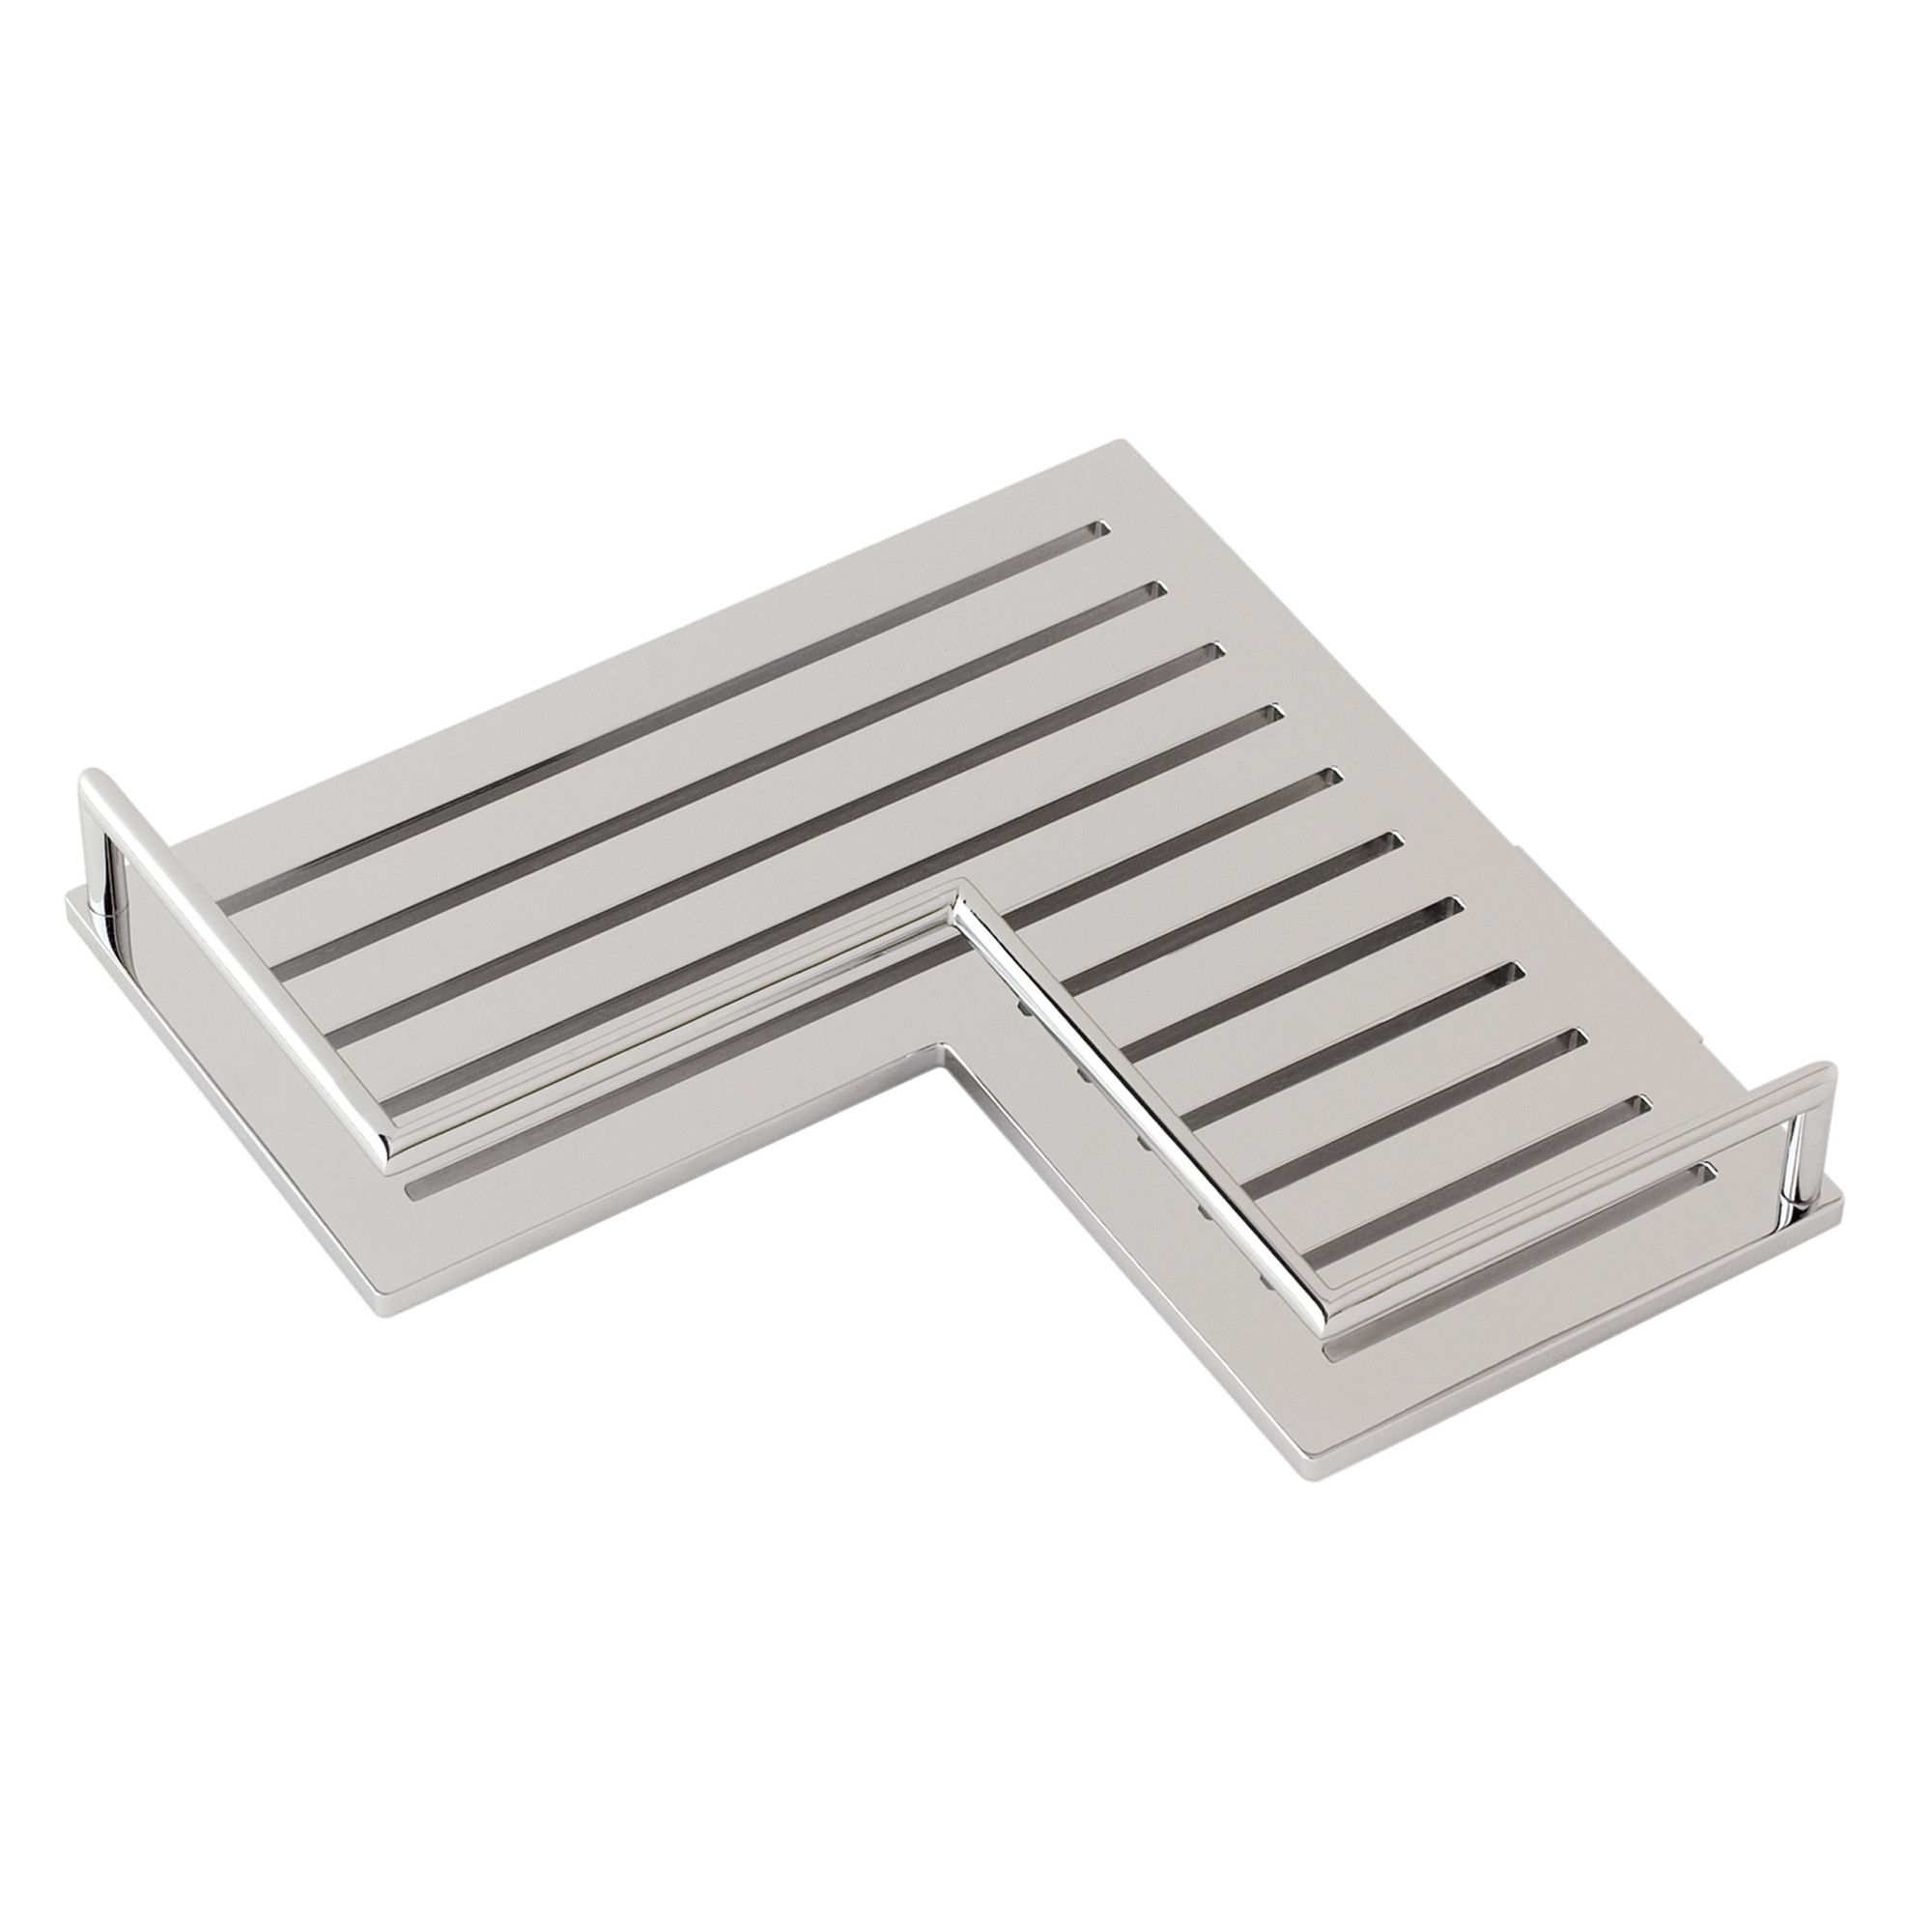 Surface Stainless Steel Shower Shelf | Stainless steel, Shelves and ...